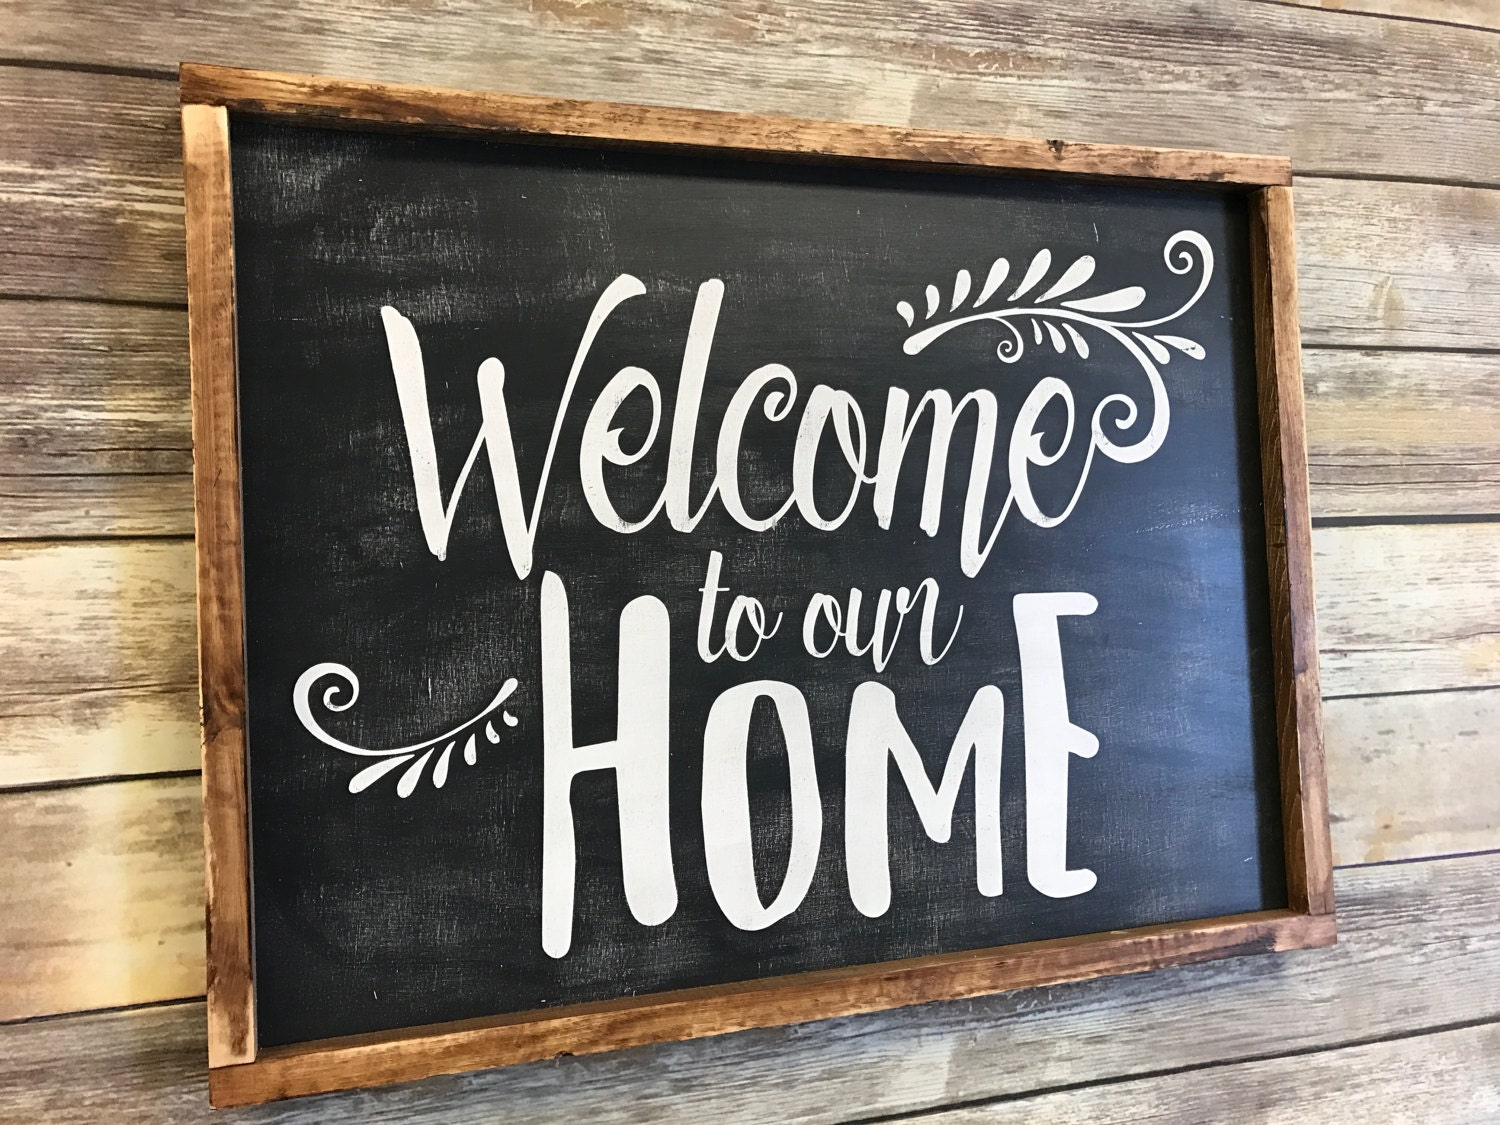 Welcome to our home wood sign welcome sign home decor sign